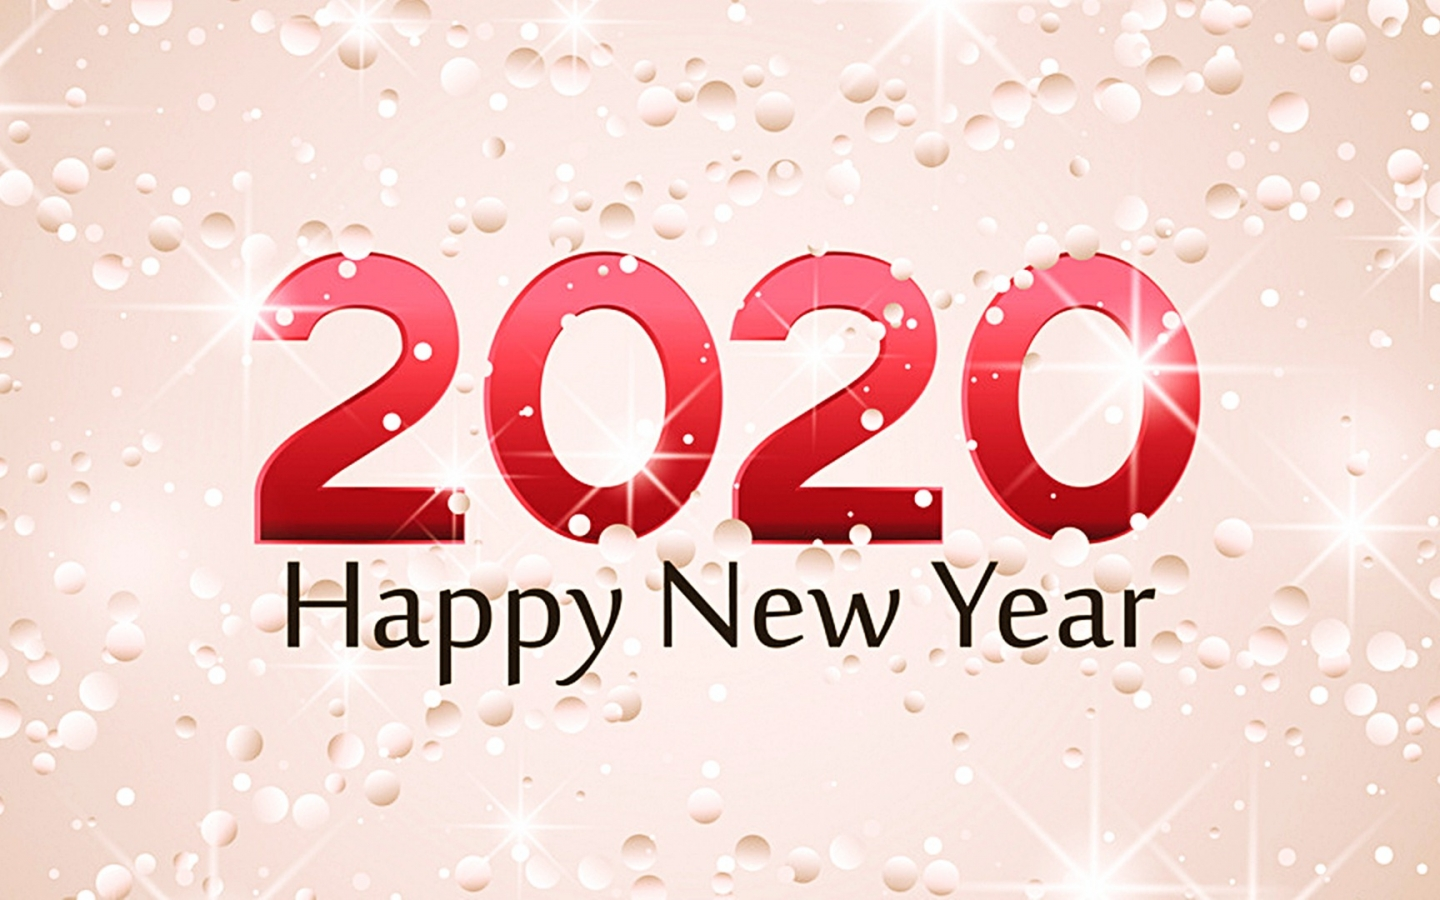 download Happy New Year 2020 Wallpaper HD 45554 Baltana 1440x900